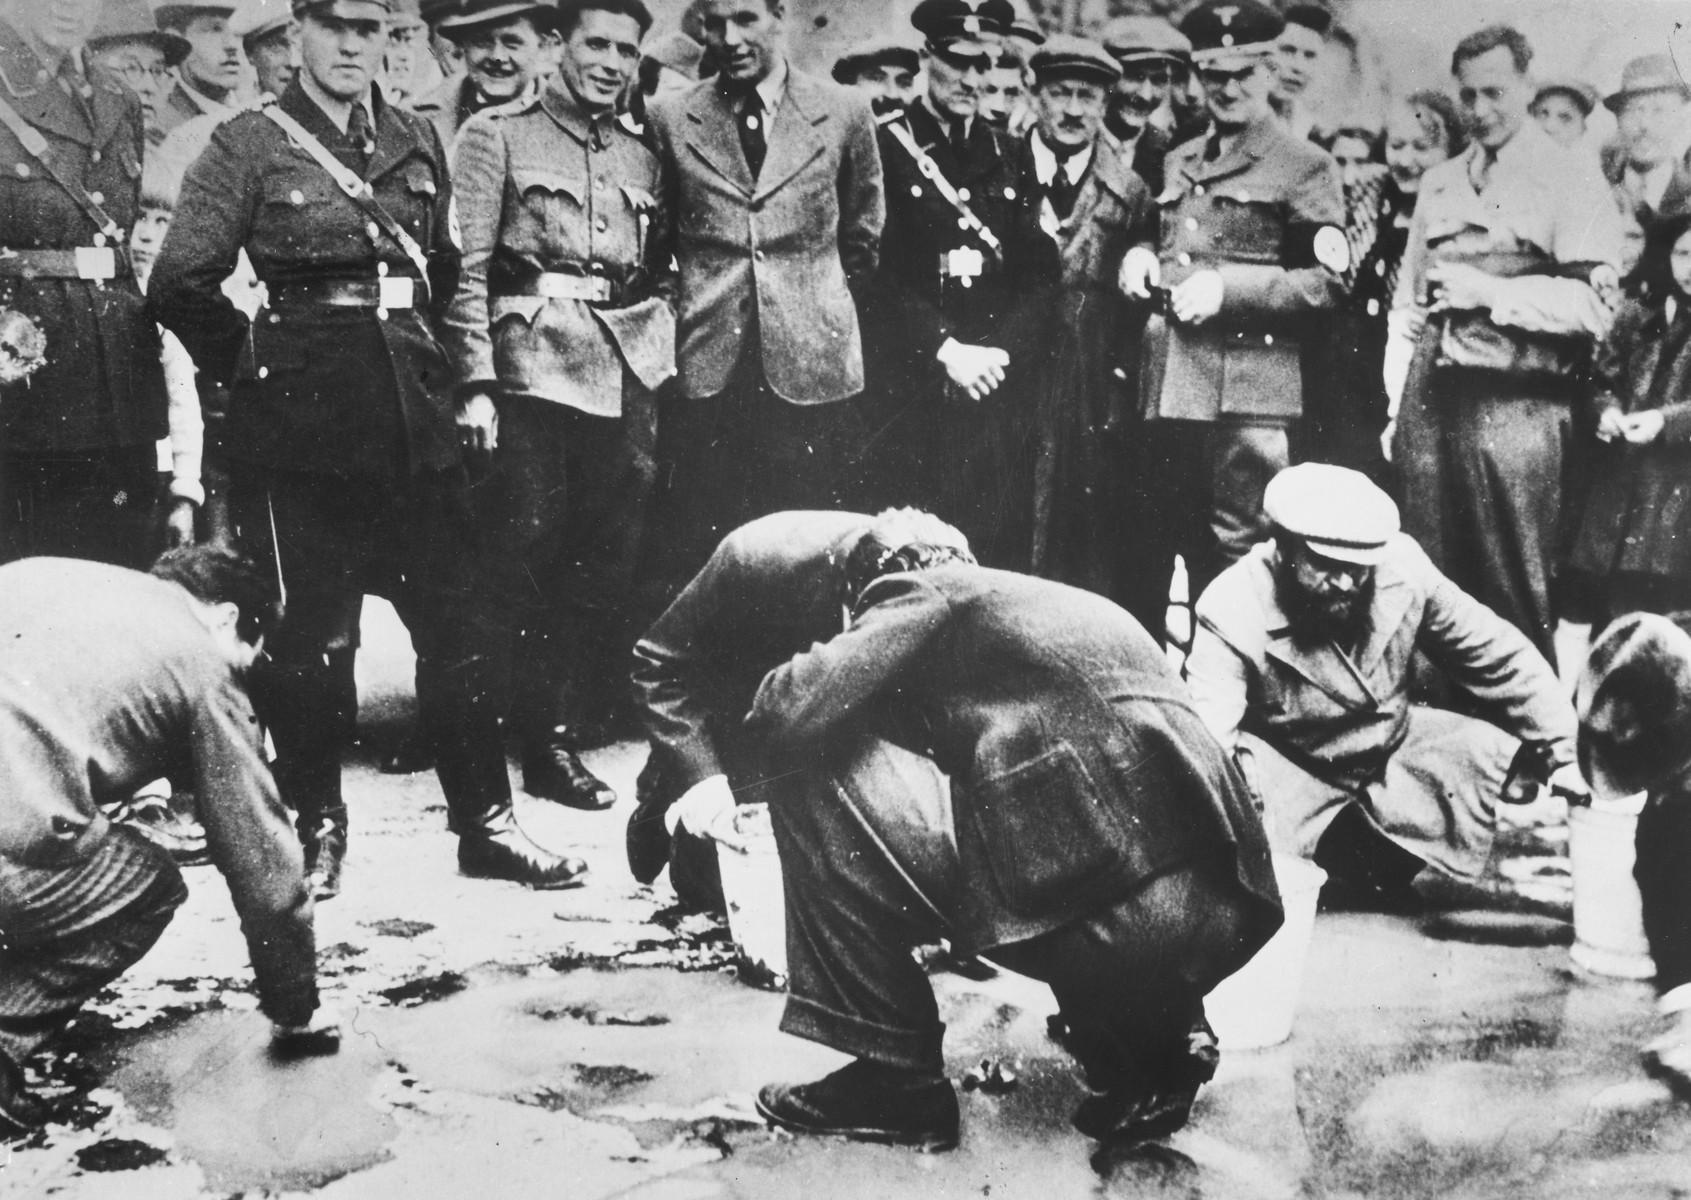 Austrian Nazis and local residents look on as Jews are forced to get on their hands and knees and scrub the pavement.